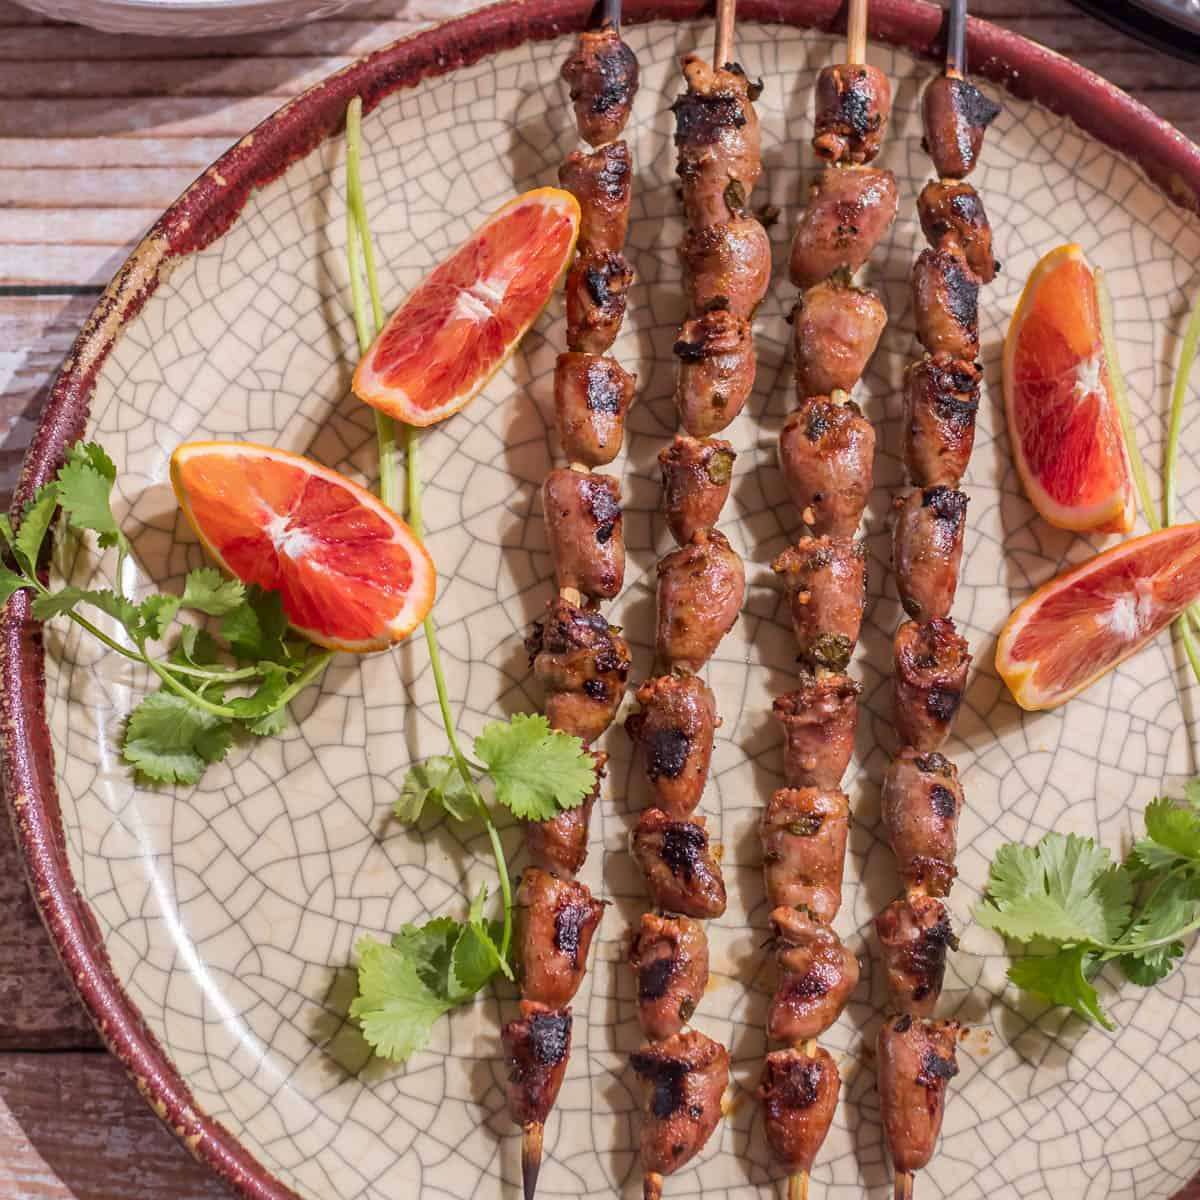 Mexican Grilled Chicken Hearts skewers on a bronze ceramic plate with Mexican Cilantro Rice and blood orange wedges.